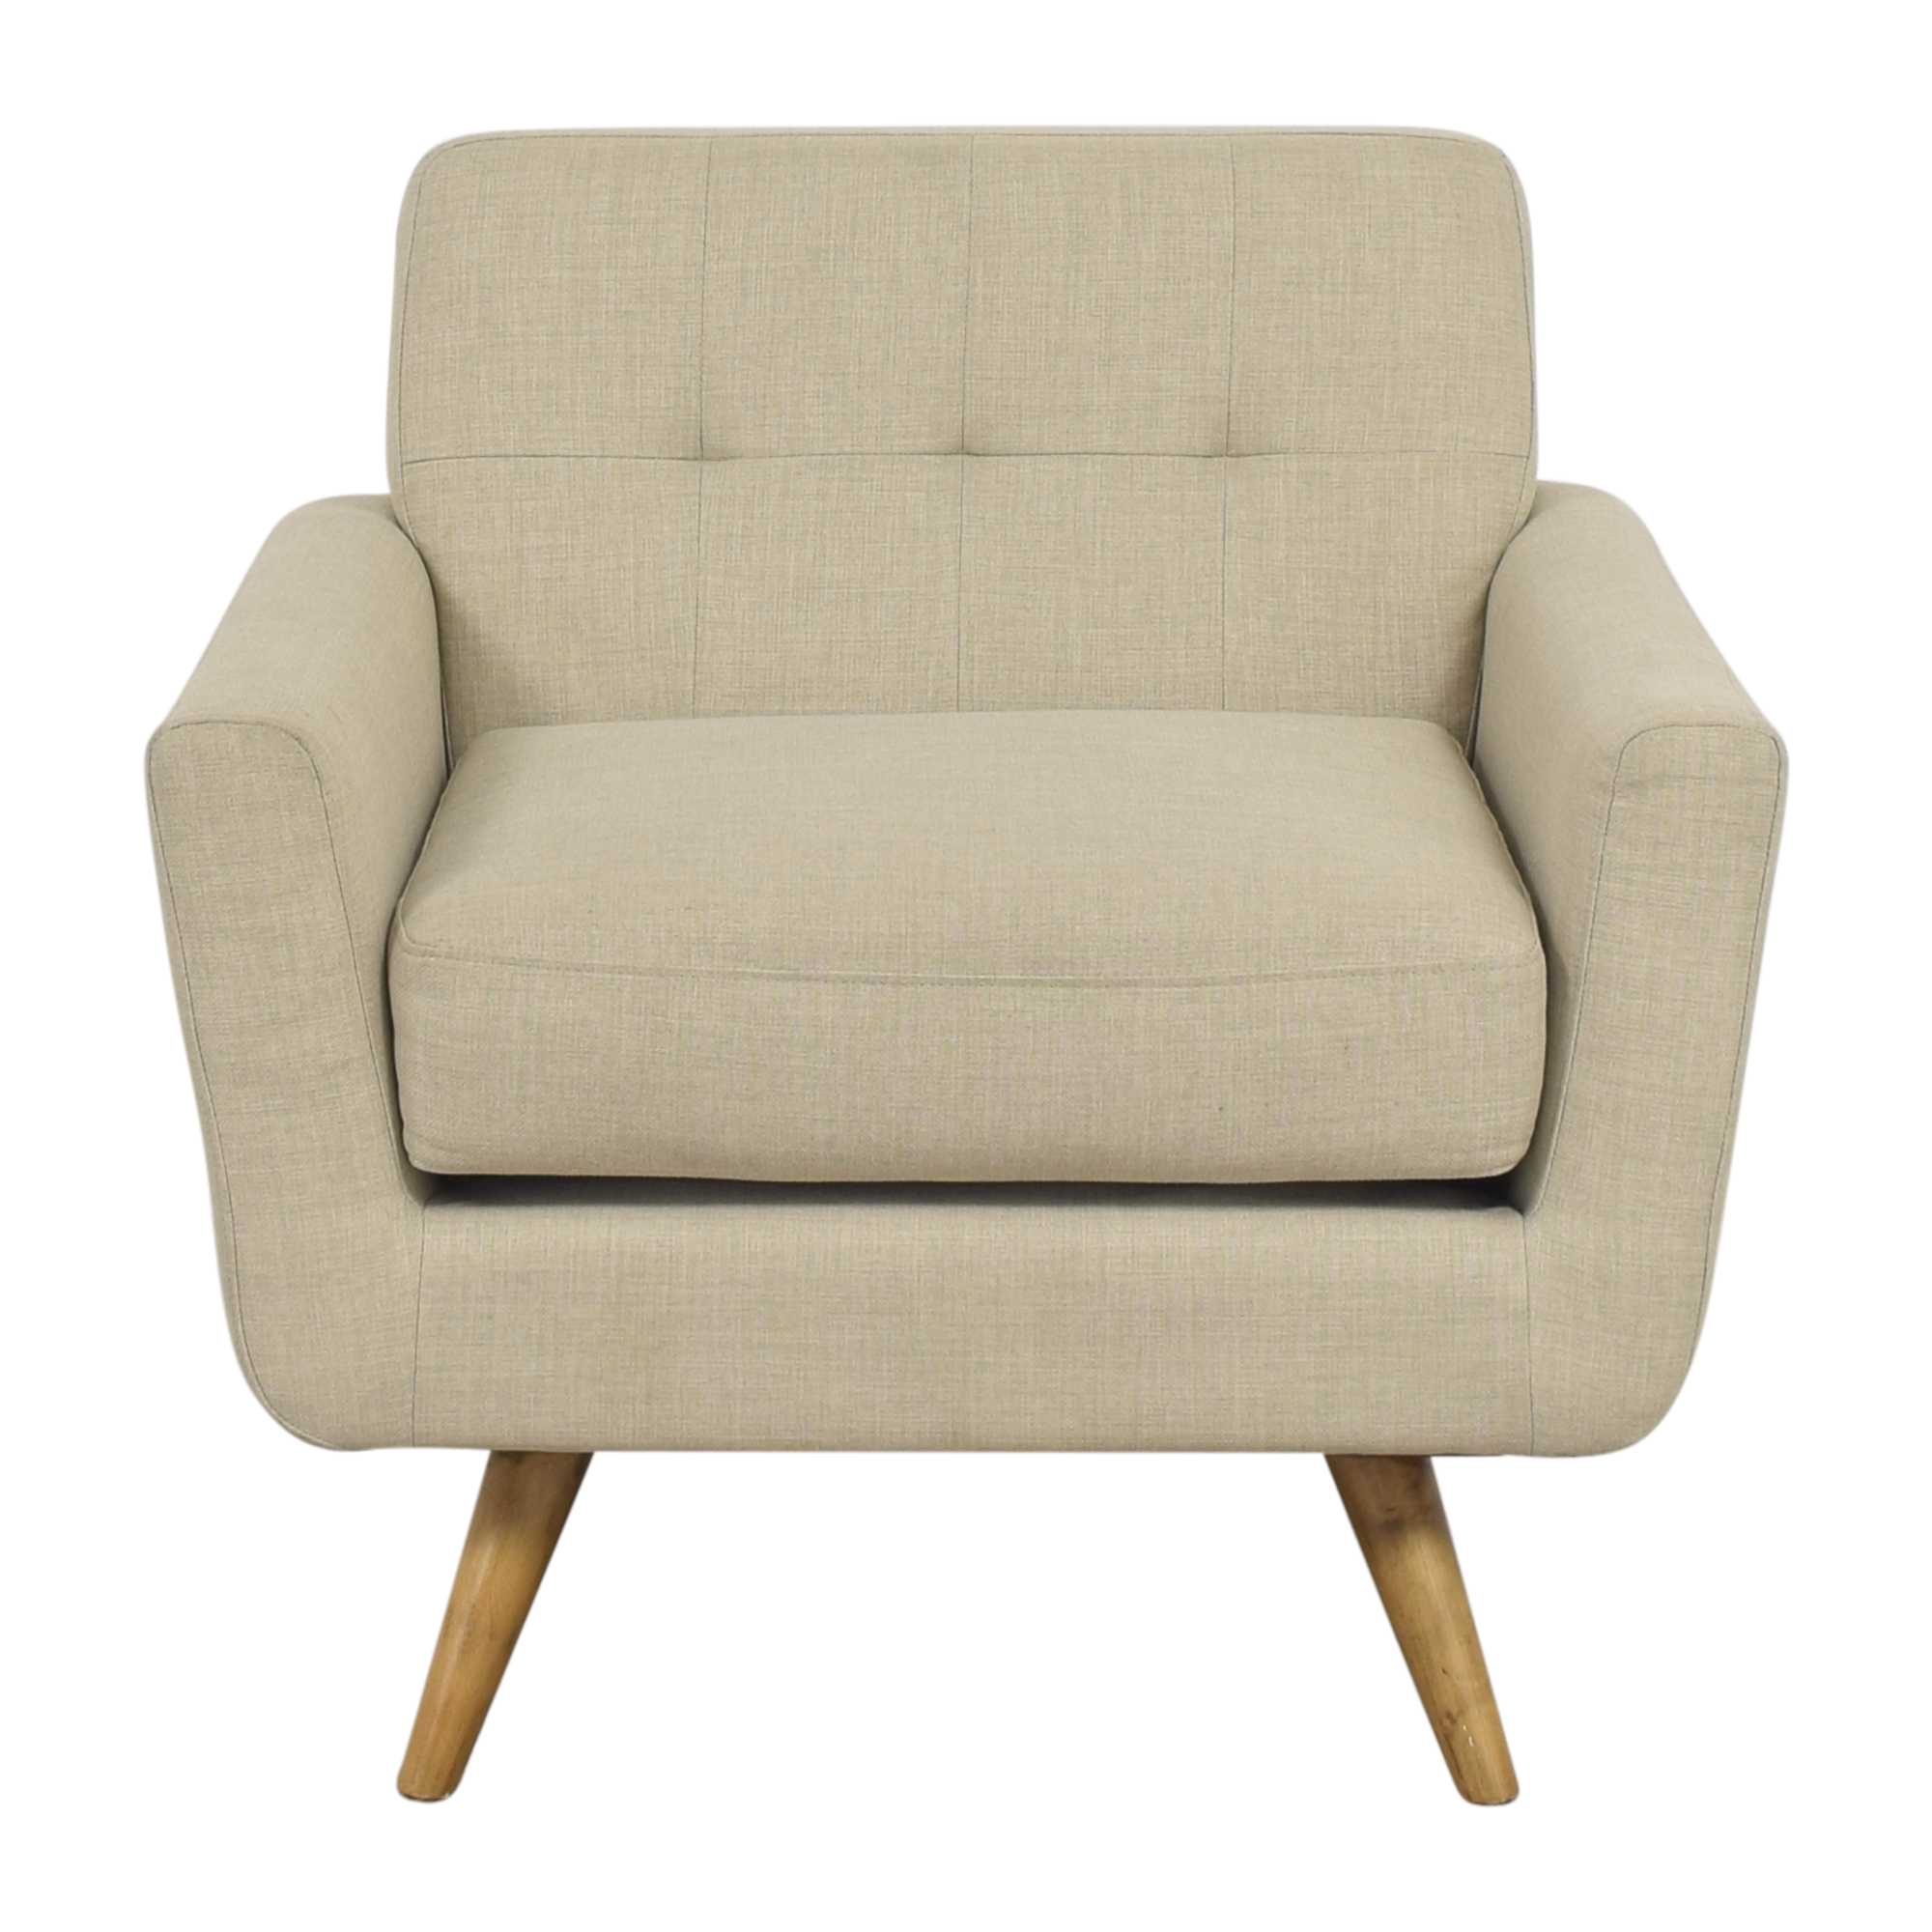 Mid-Century Modern Style Accent Chair nyc